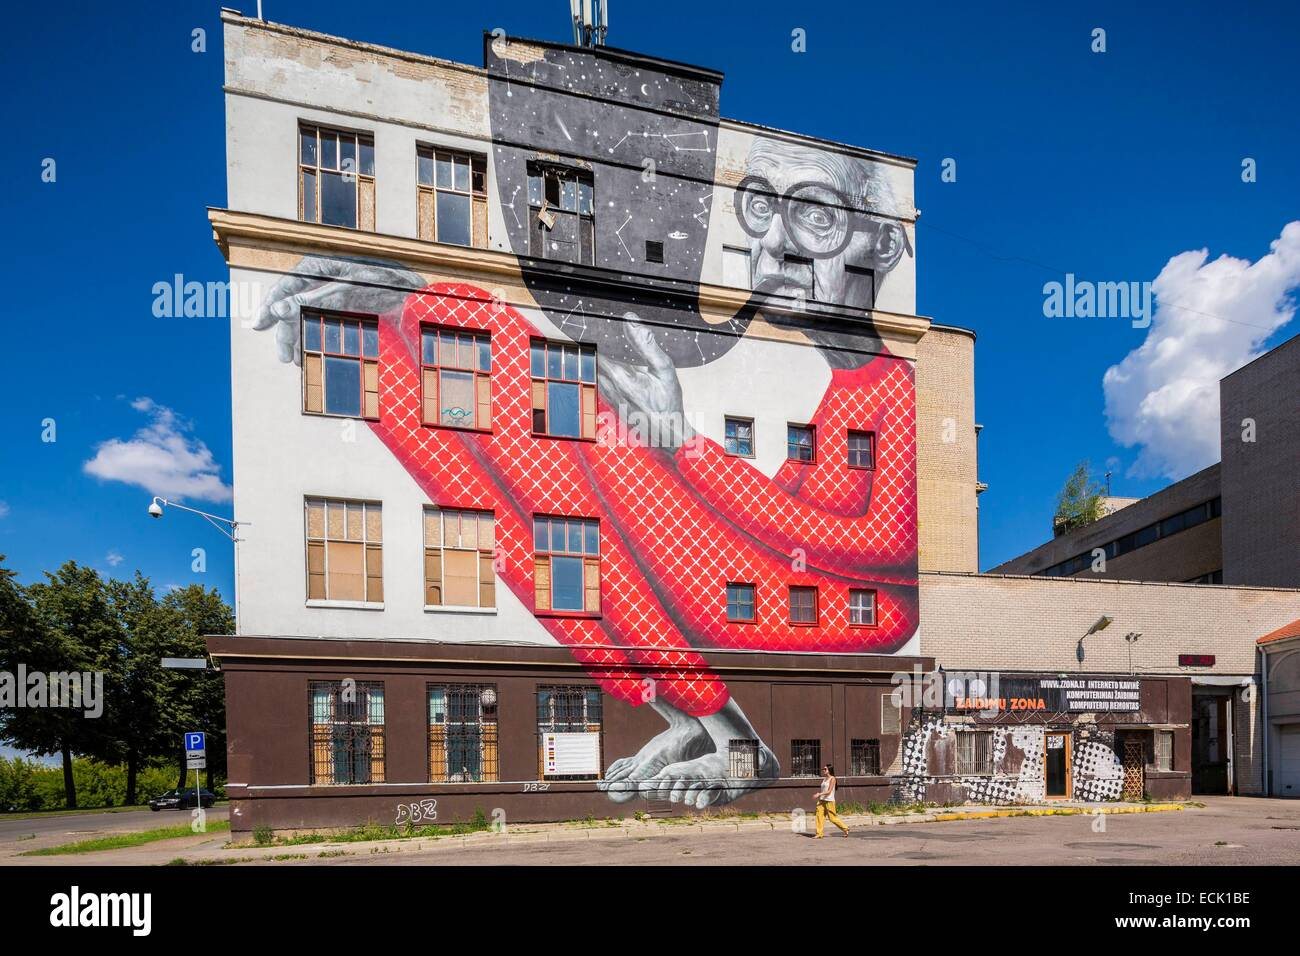 Lithuania (Baltic States), Kaunas County, Kaunas, mural Wise Grandpa by Gyva Grafika on the wall of the theatre, - Stock Image